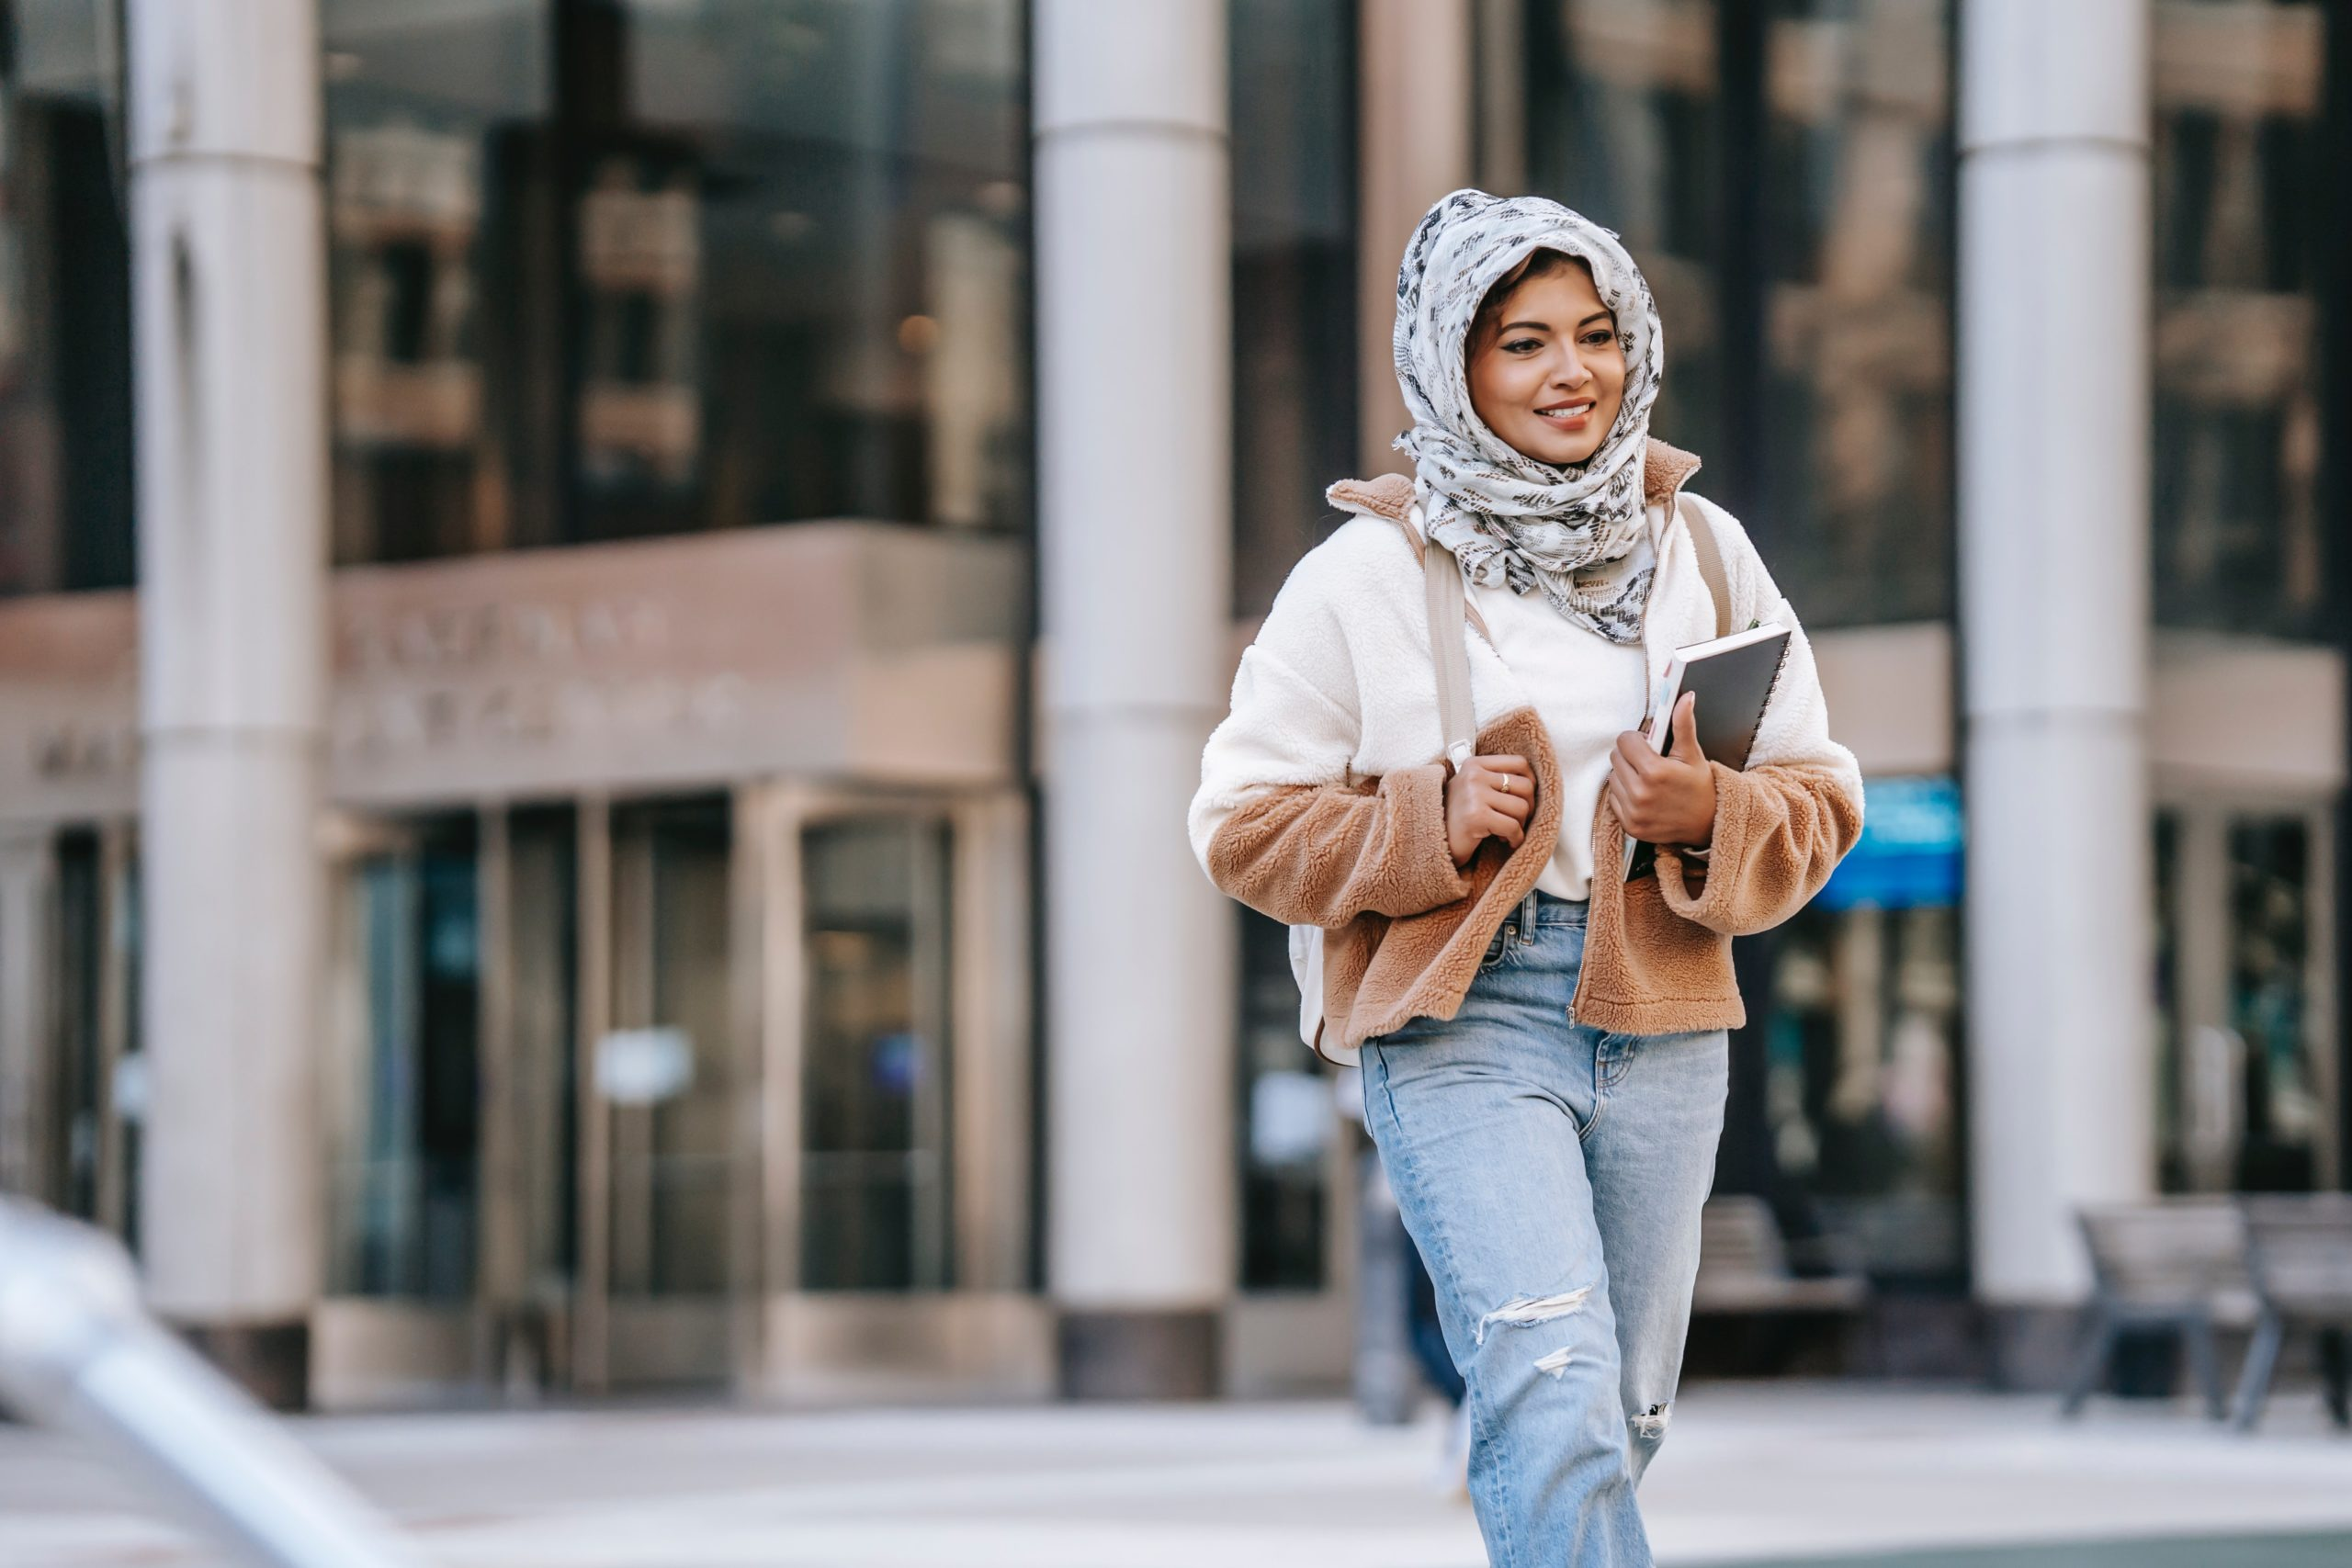 Donning the Hijab: My Day as an Undercover Muslim Woman